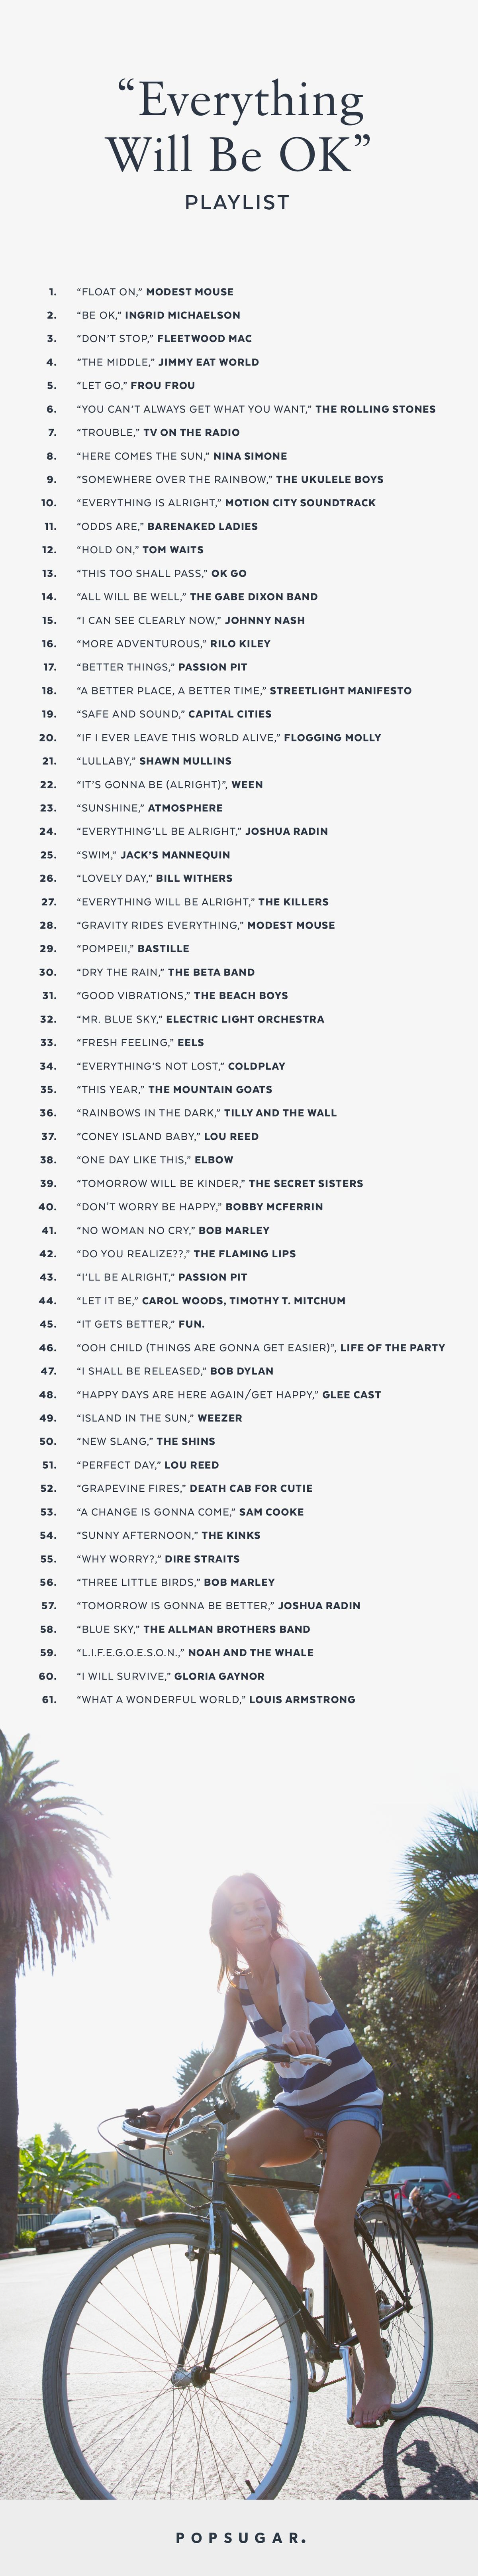 Songs about smiling and being happy